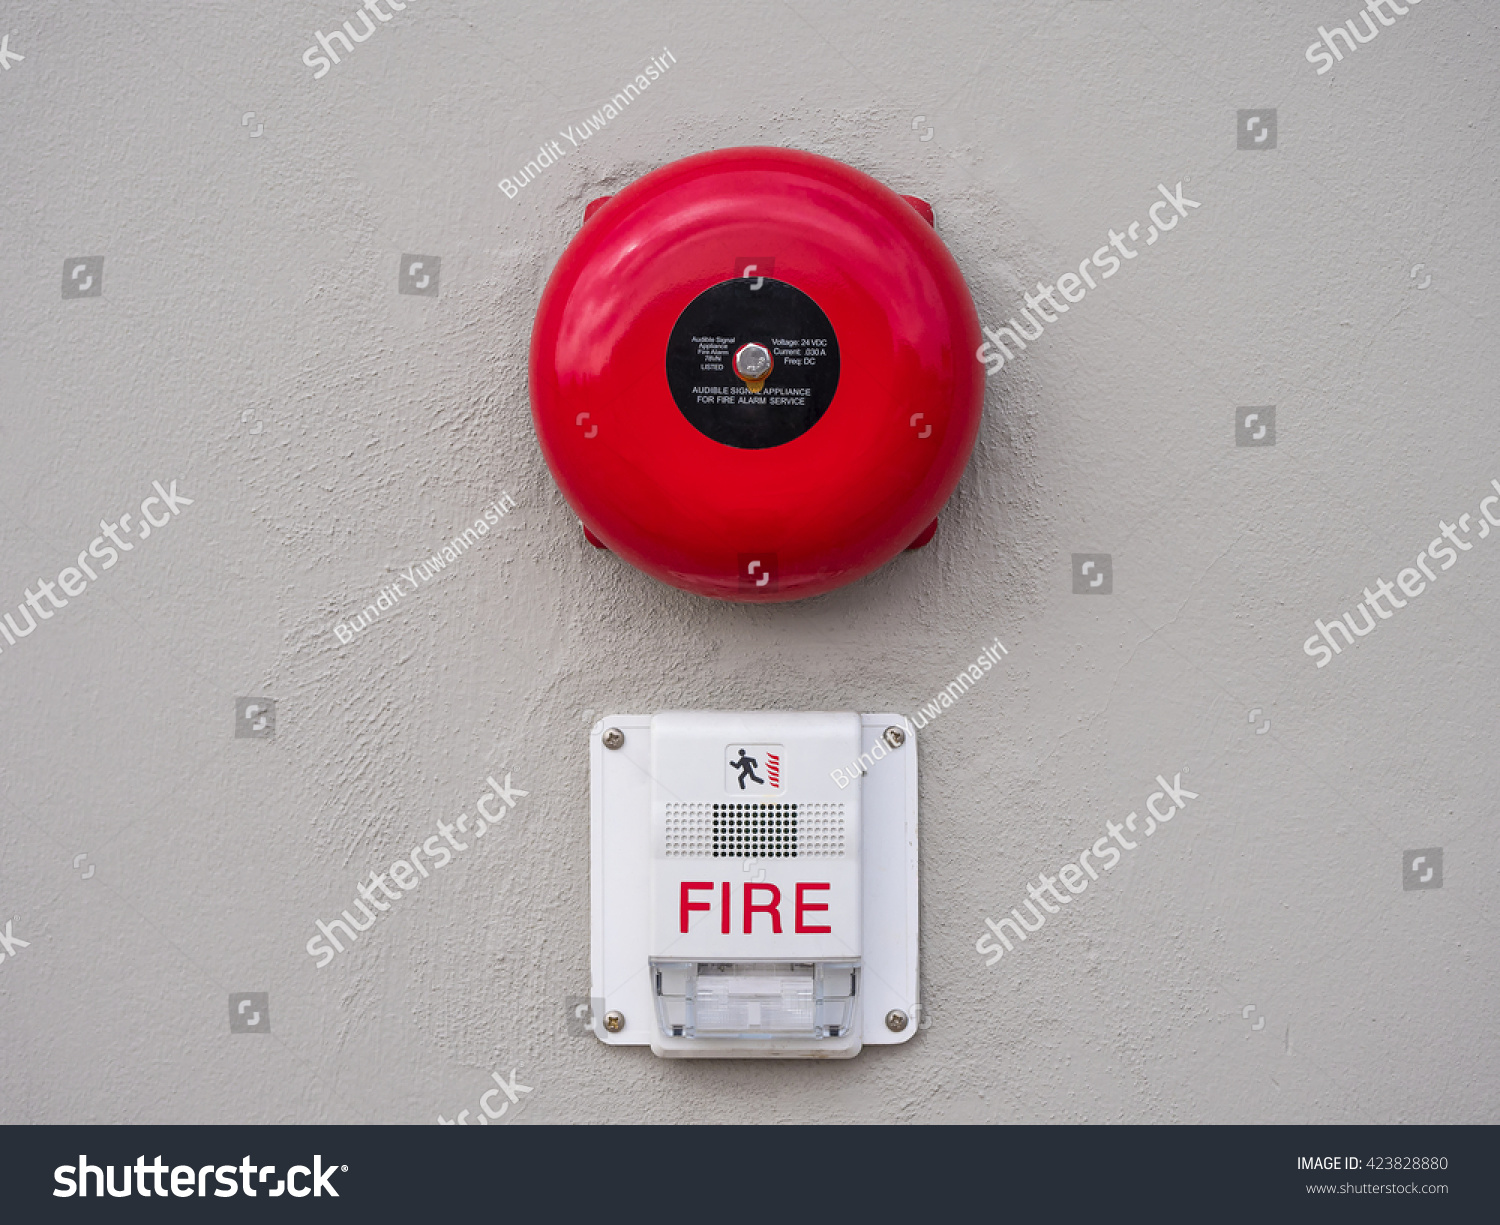 Red Fire Alarm Bell Push Button Stock Photo 423828880